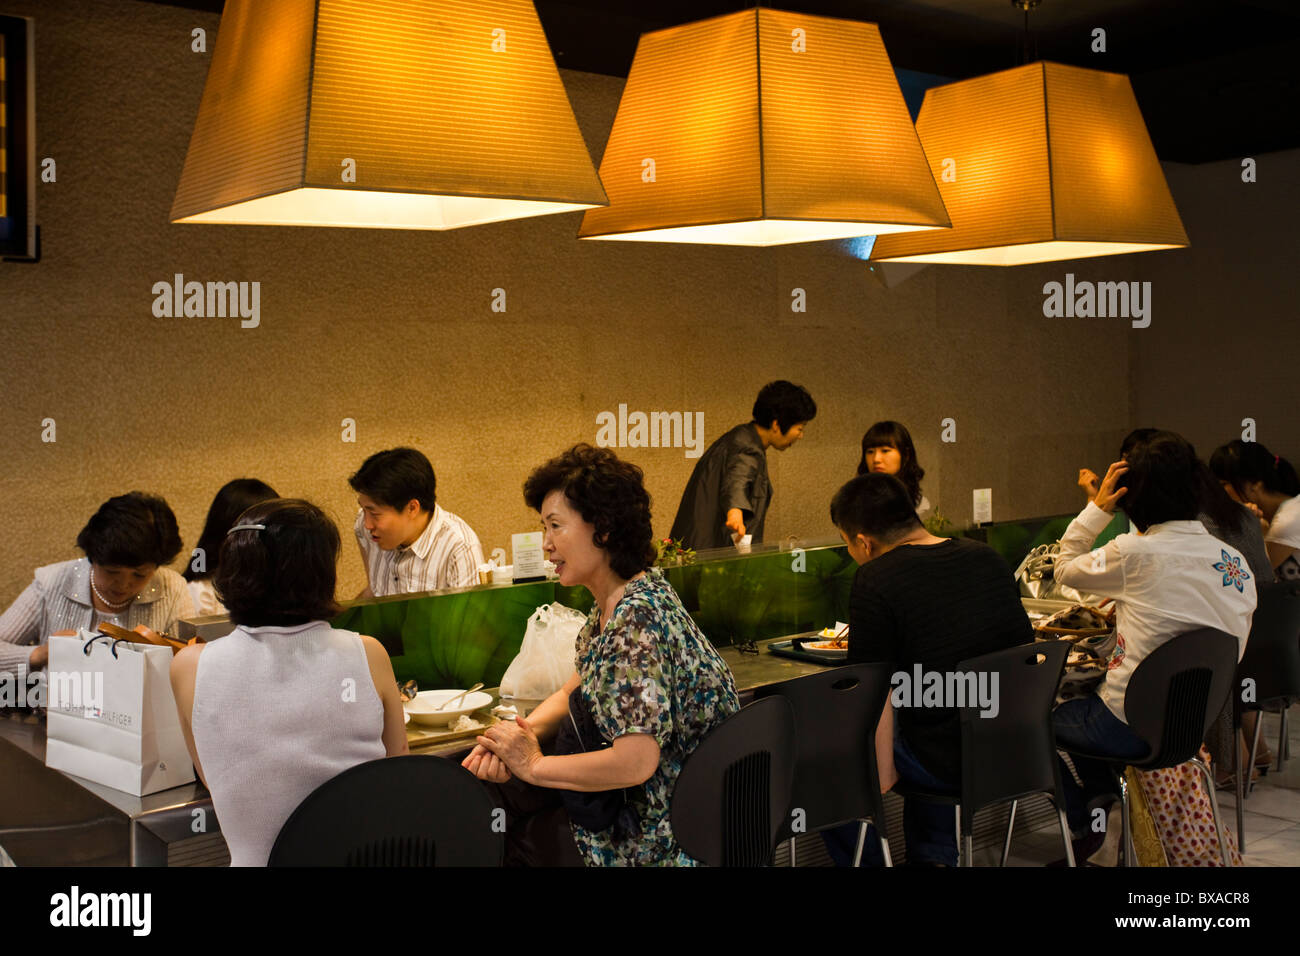 Wealthy Koreans eating lunch at a restaurant at Lotte Department Store - Stock Image